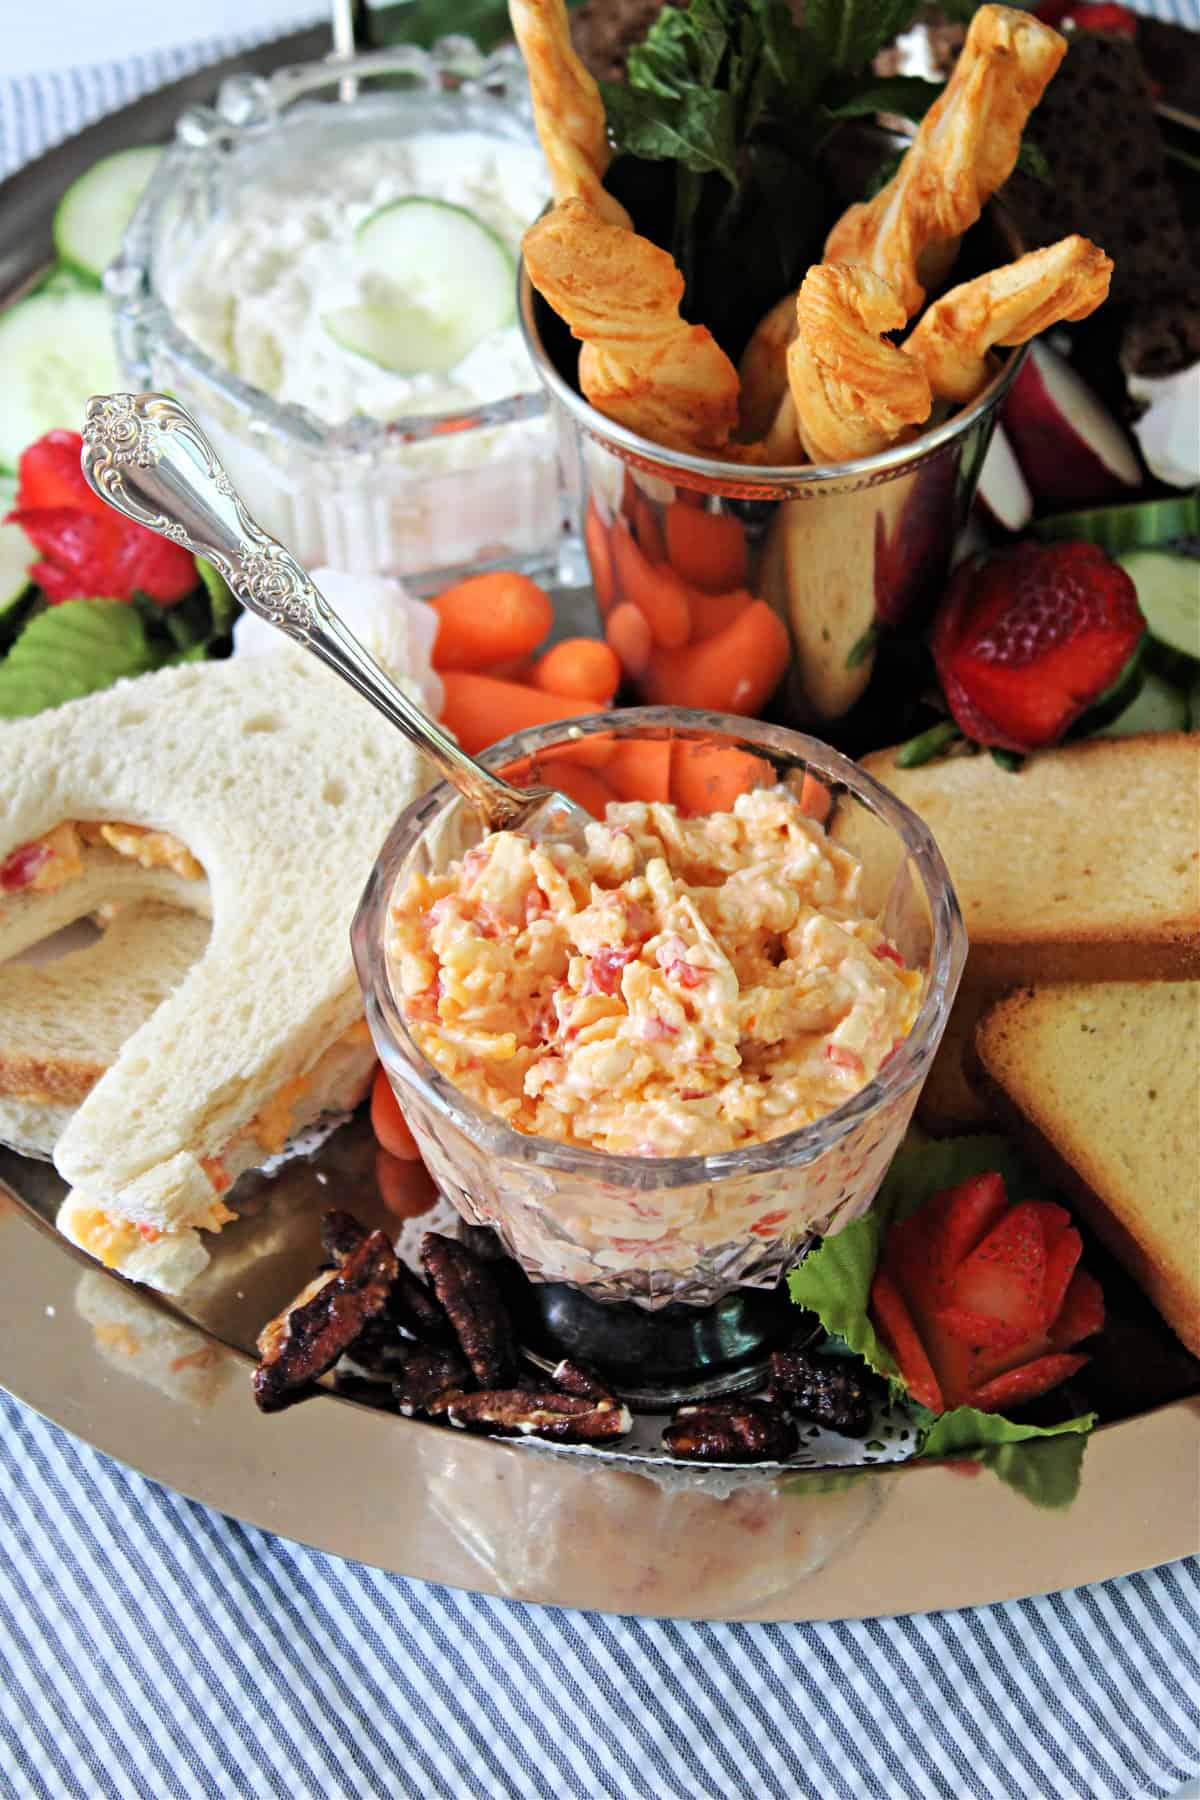 Pimento Cheese in a glass serving dish.